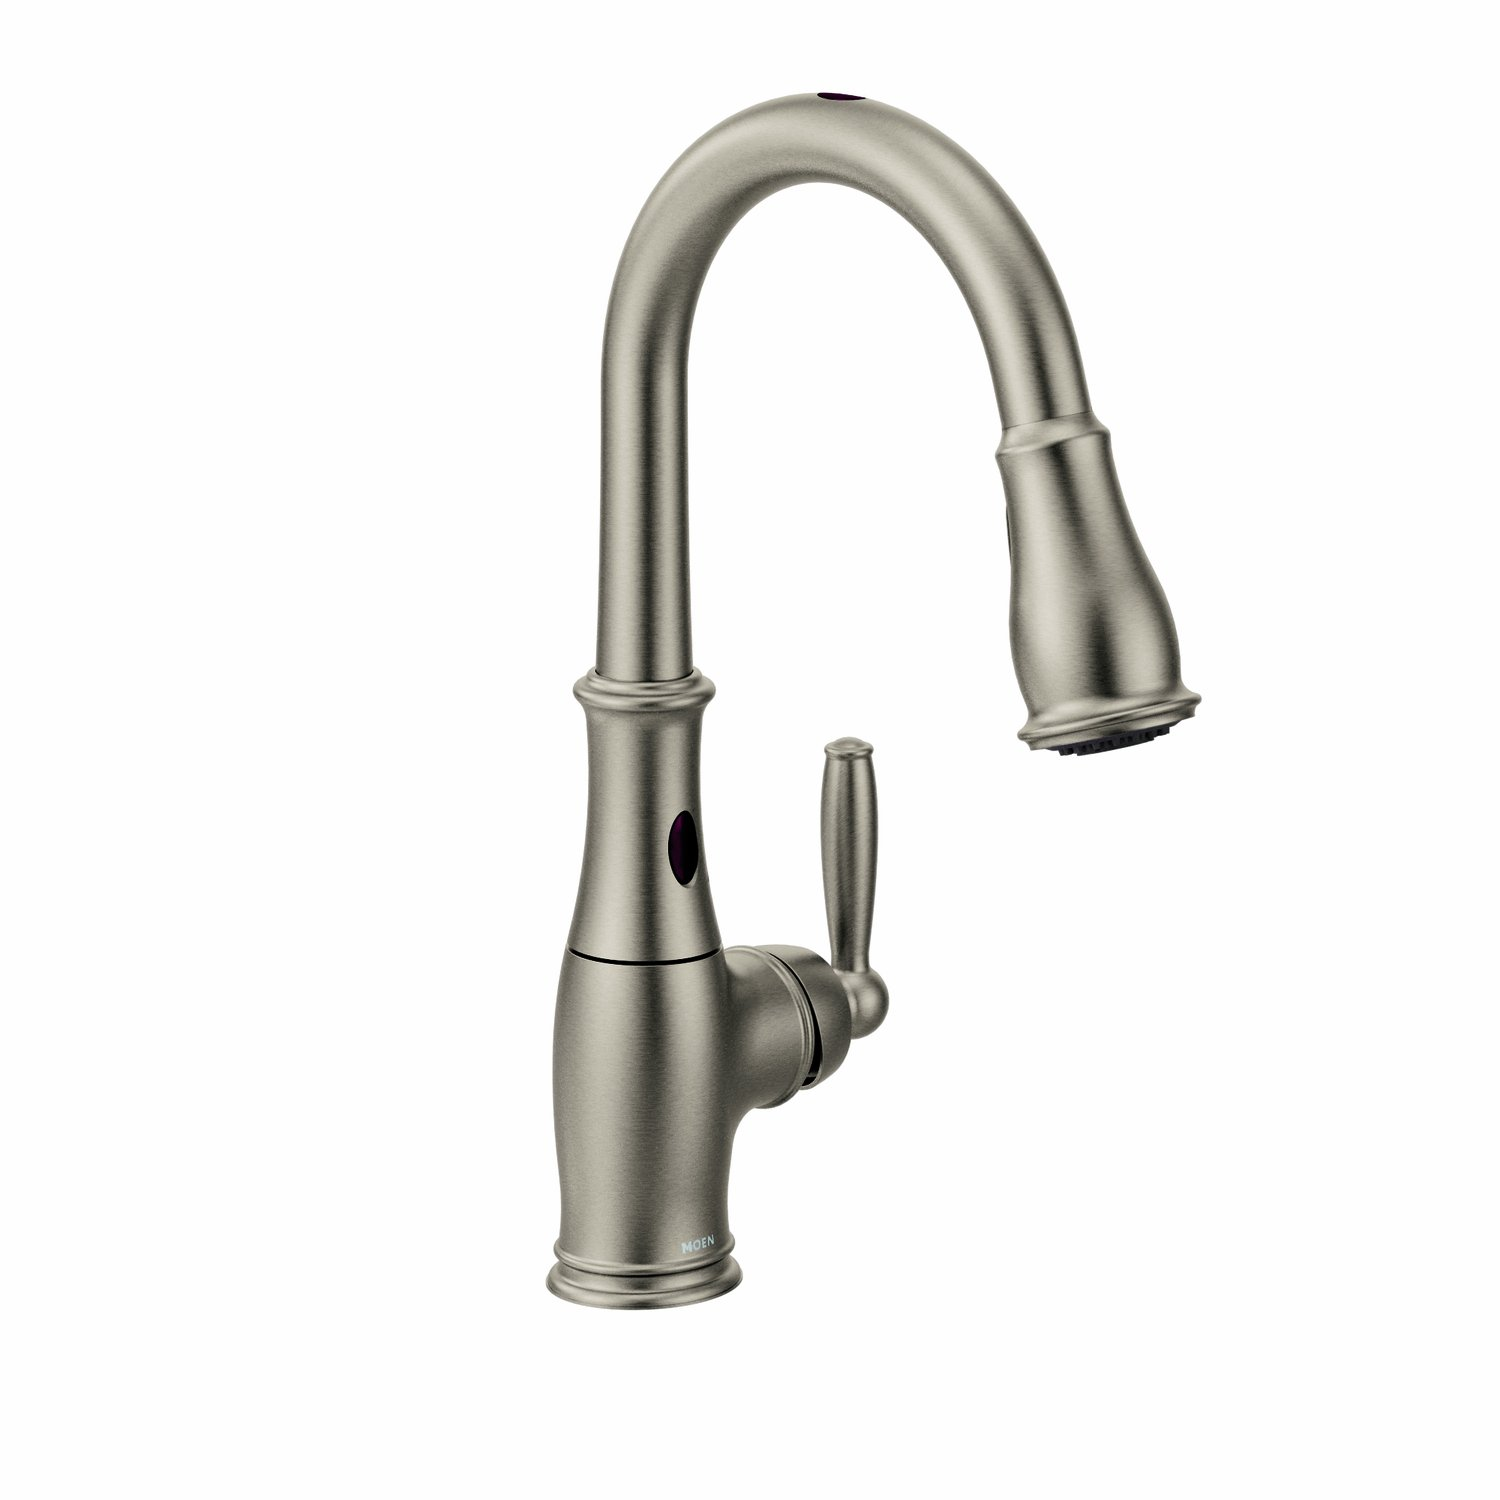 faucets touchless free sensor valve chrome dp for com mixing amazon hands polished temperature freuer faucet